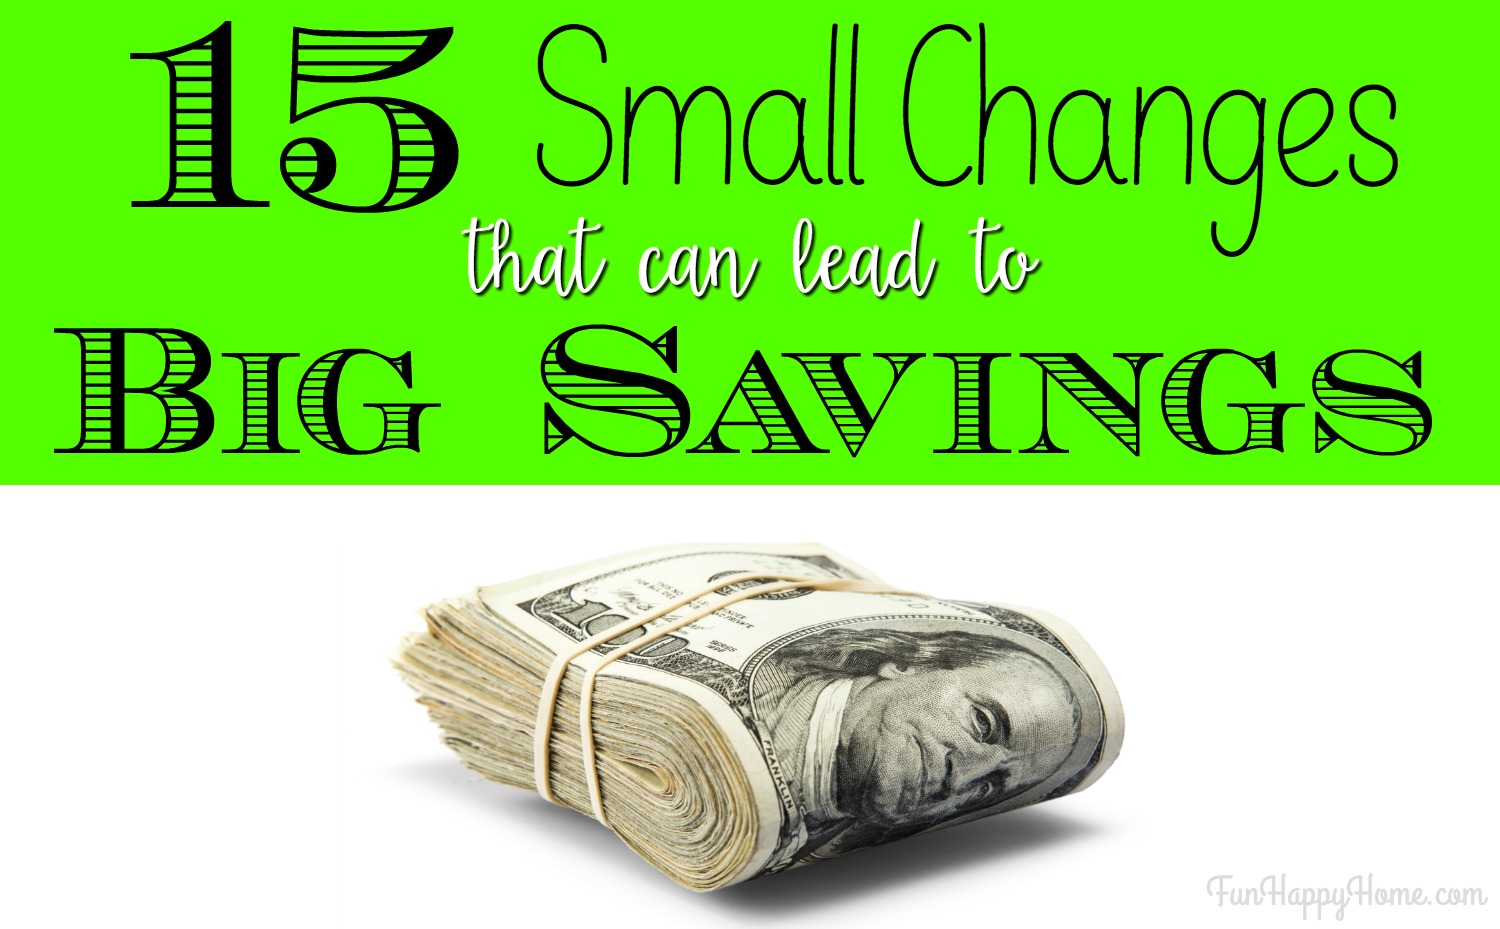 The Best Ways To Save Money 15 Small Changes That Can Lead To Big Savings